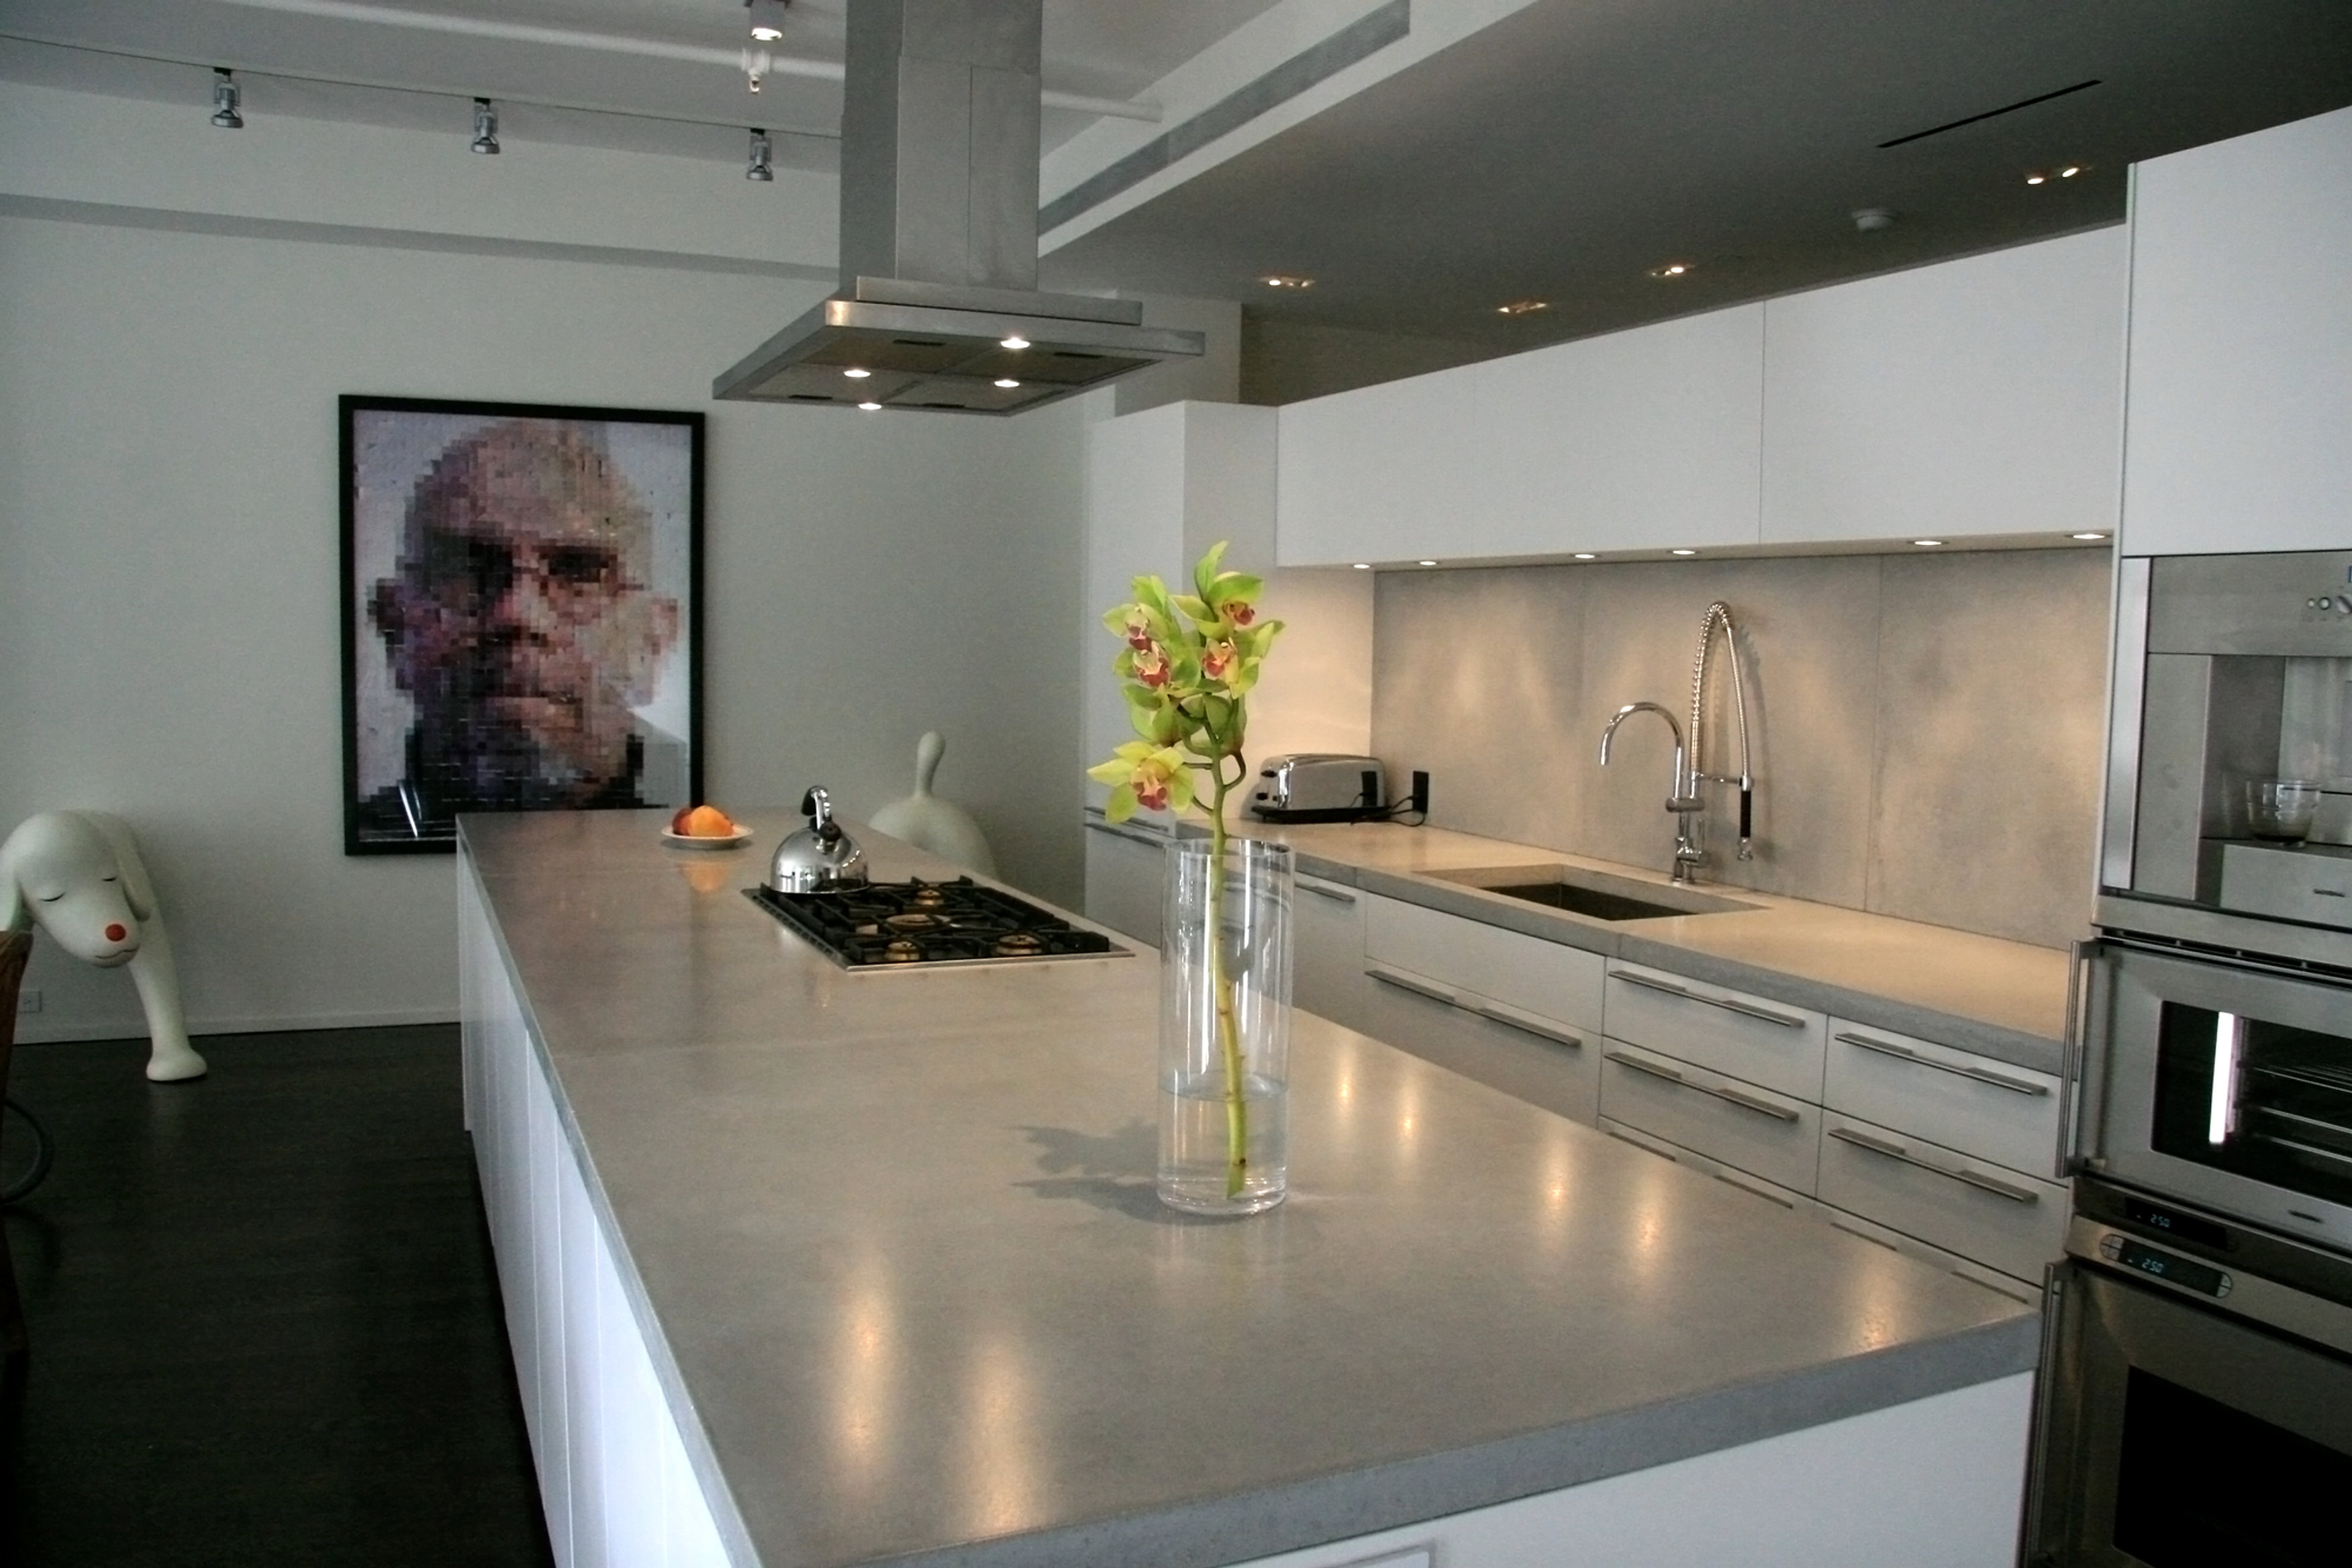 Concrete Shop LLC. Polished concrete products.